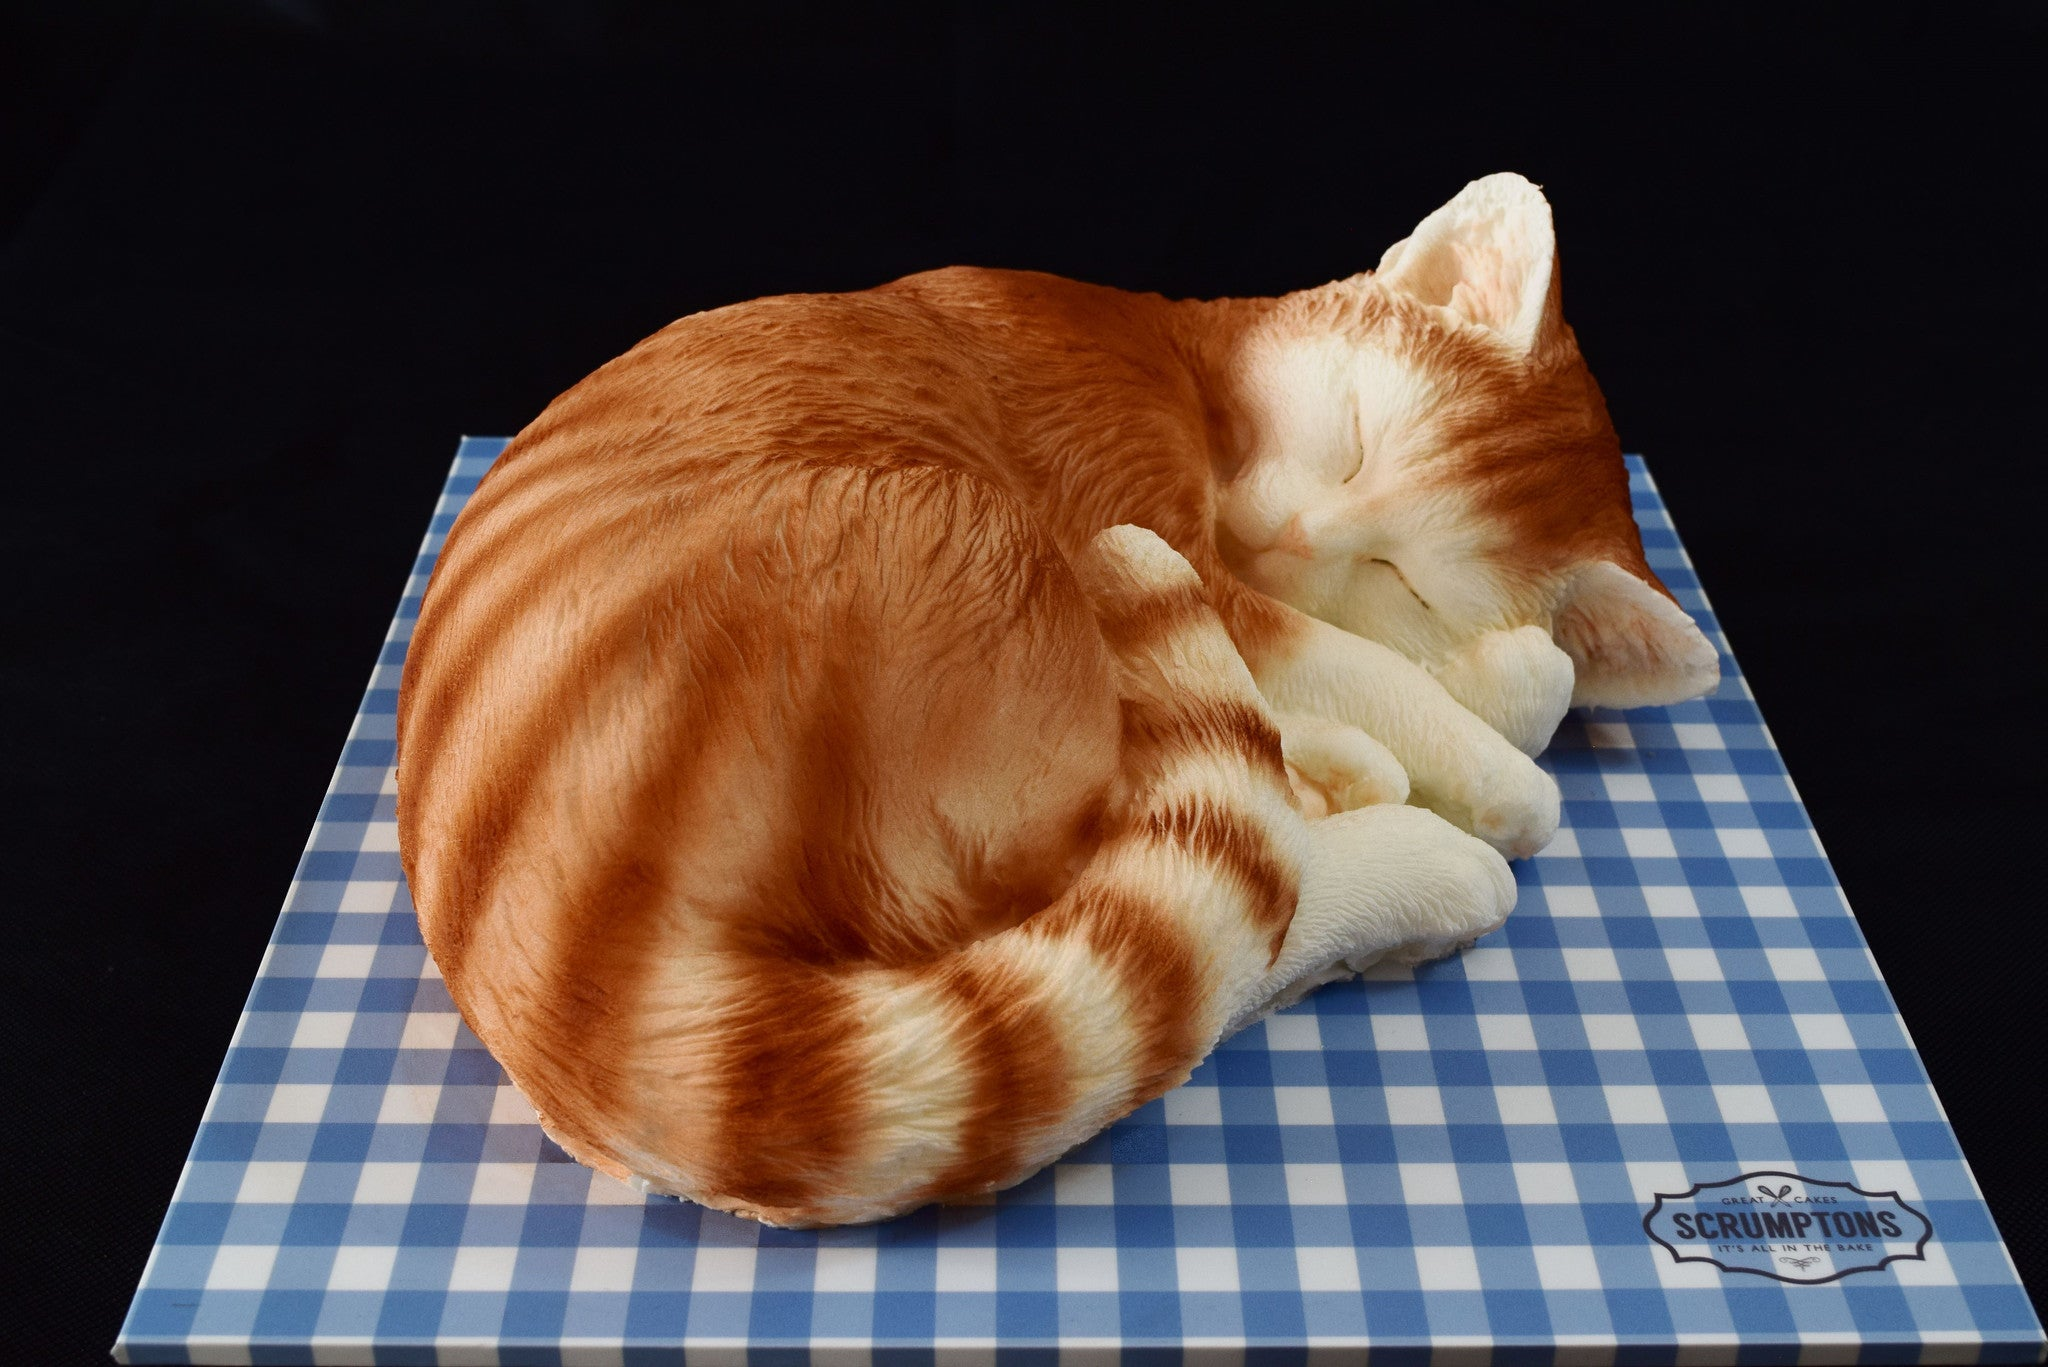 Aston Martin Offers >> Cat Cake | Scrumptons